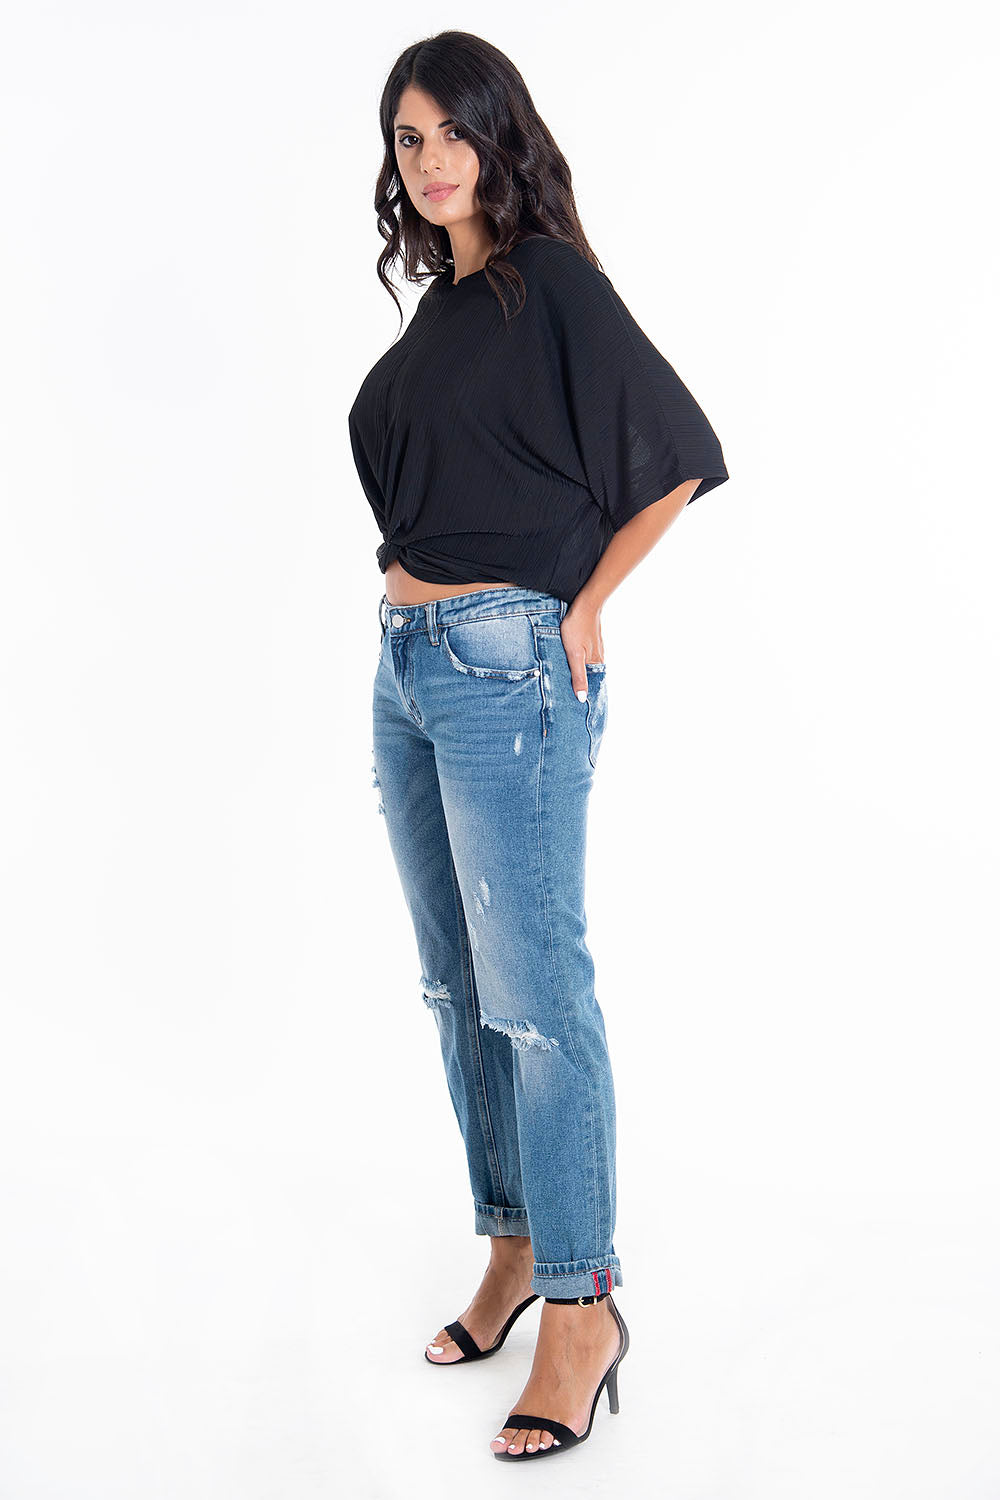 Influencer ribbed oversized t-shirt with knot